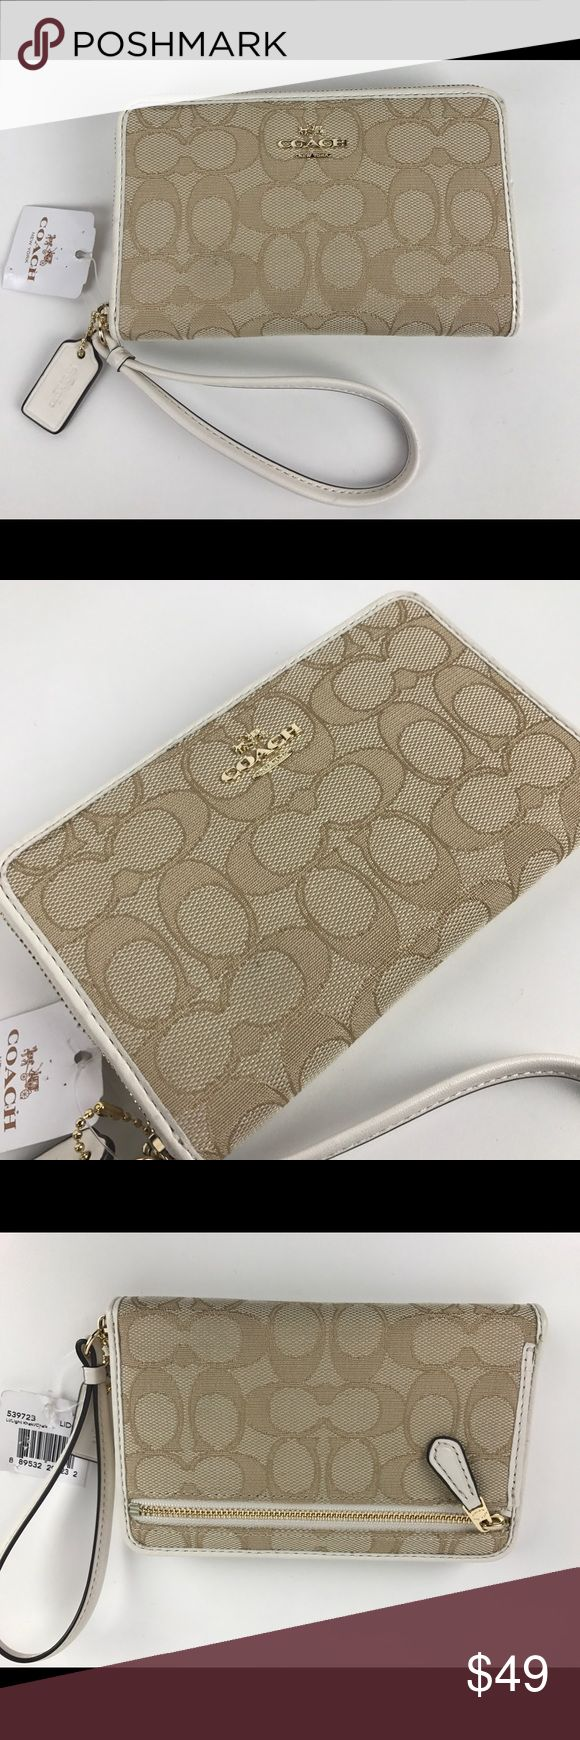 """Coach Signature Jacquard Zip Around Wristlet Authentic. New, with Tags. One tiny pinhead mark on exterior from handling.   Khaki Signature Jacquard with Leather trim, gold-tone hardware and leather interior. Zip closure, Leather wrist strap. 6.5""""L x 4""""H x 1""""D. Style 53972B. RB466.  Thank you for your interest!  PLEASE - NO TRADES / NO LOW BALL OFFERS / NO OFFERS IN COMMENTS - USE THE OFFER LINK :-) Coach Bags Wallets"""